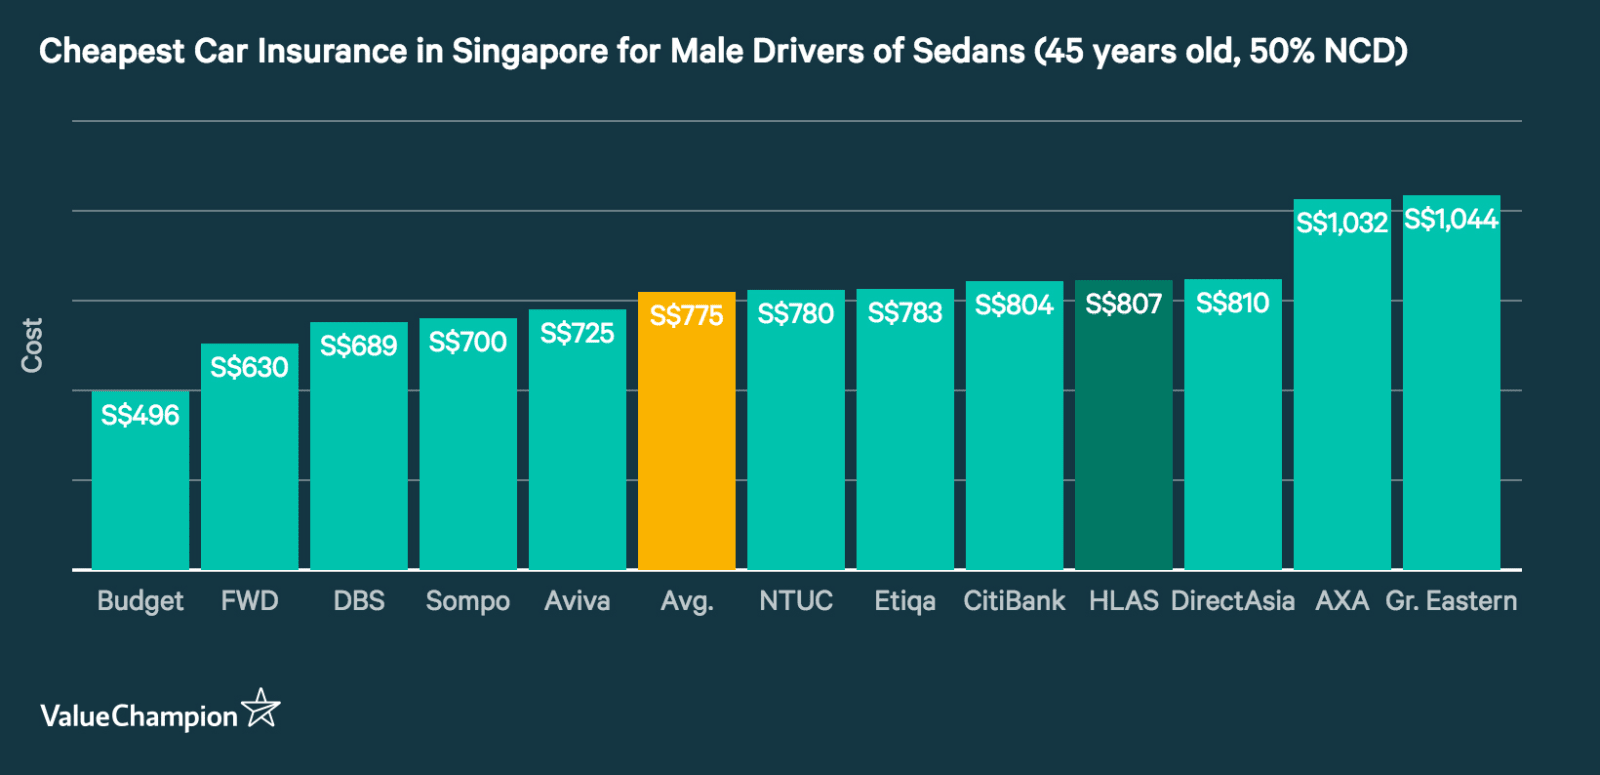 This graph shows the cheapest car insurance premiums in Singapore for a 45 year old male driving a mid-priced sedan